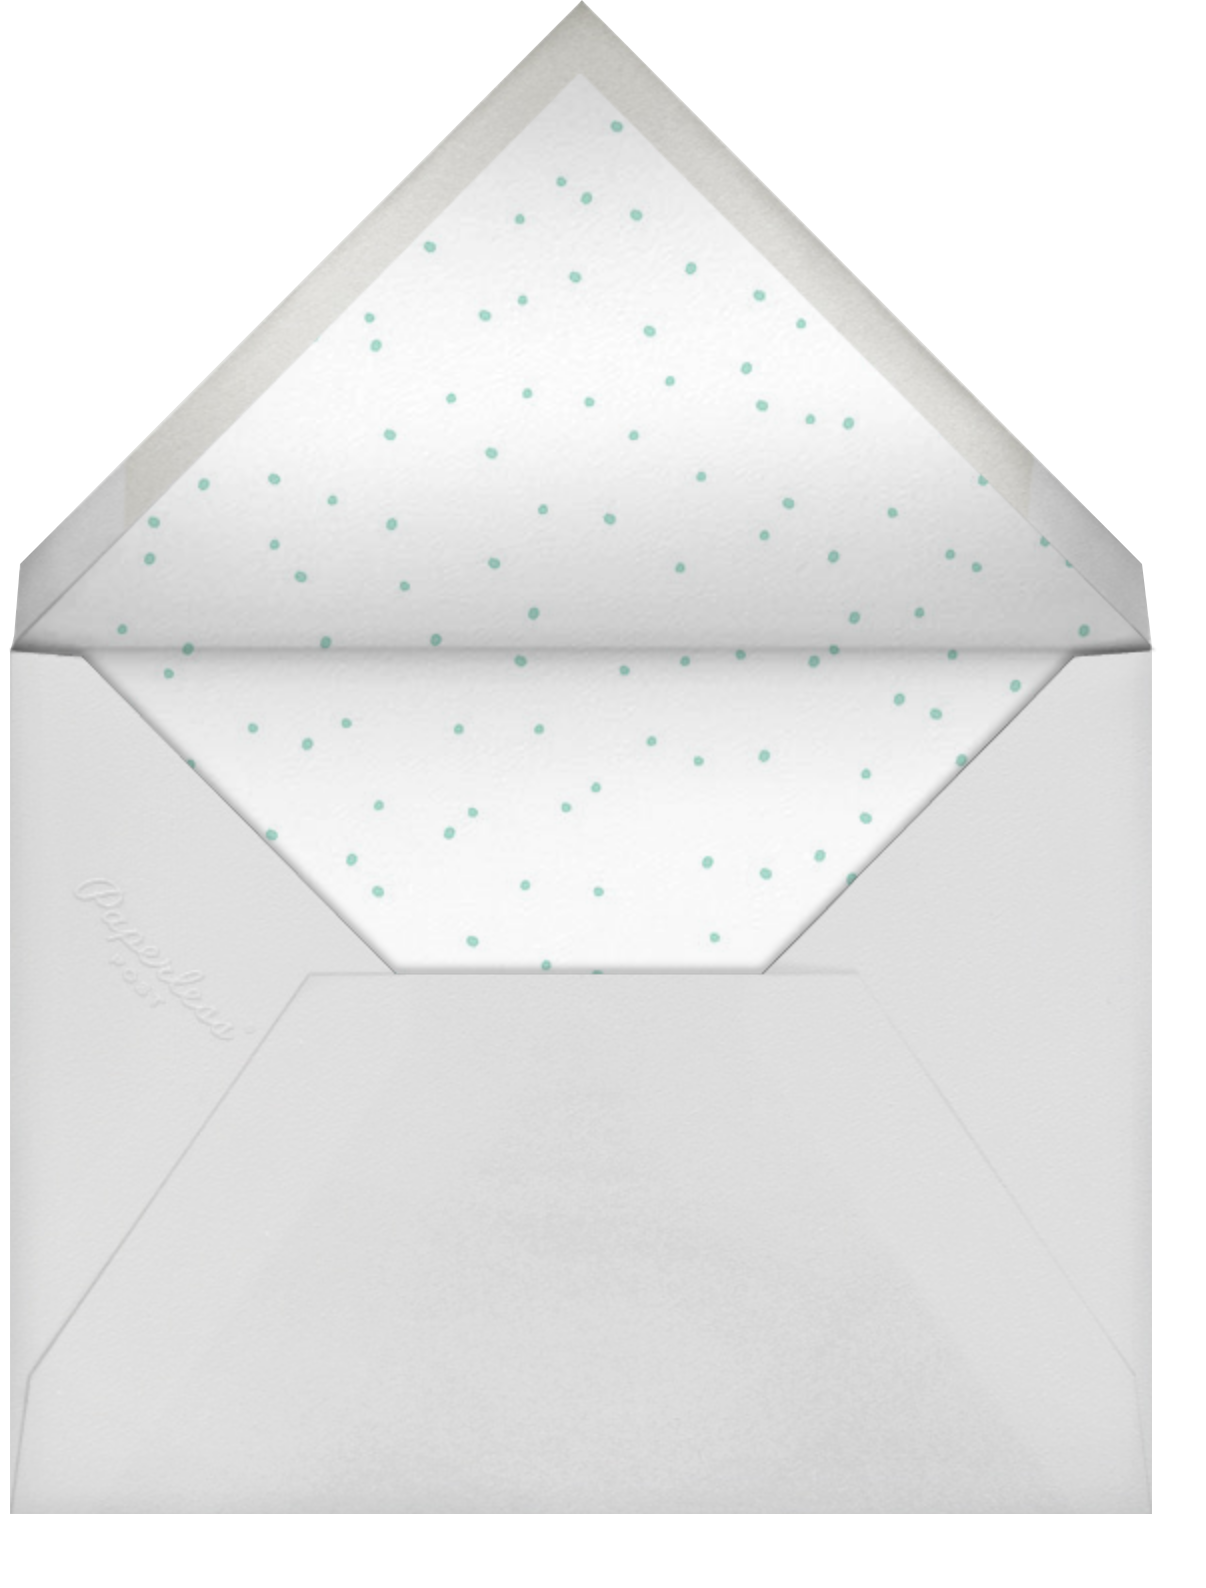 With Hugs and Kisses (Double-Sided) - Slate - Linda and Harriett - Kids' stationery - envelope back